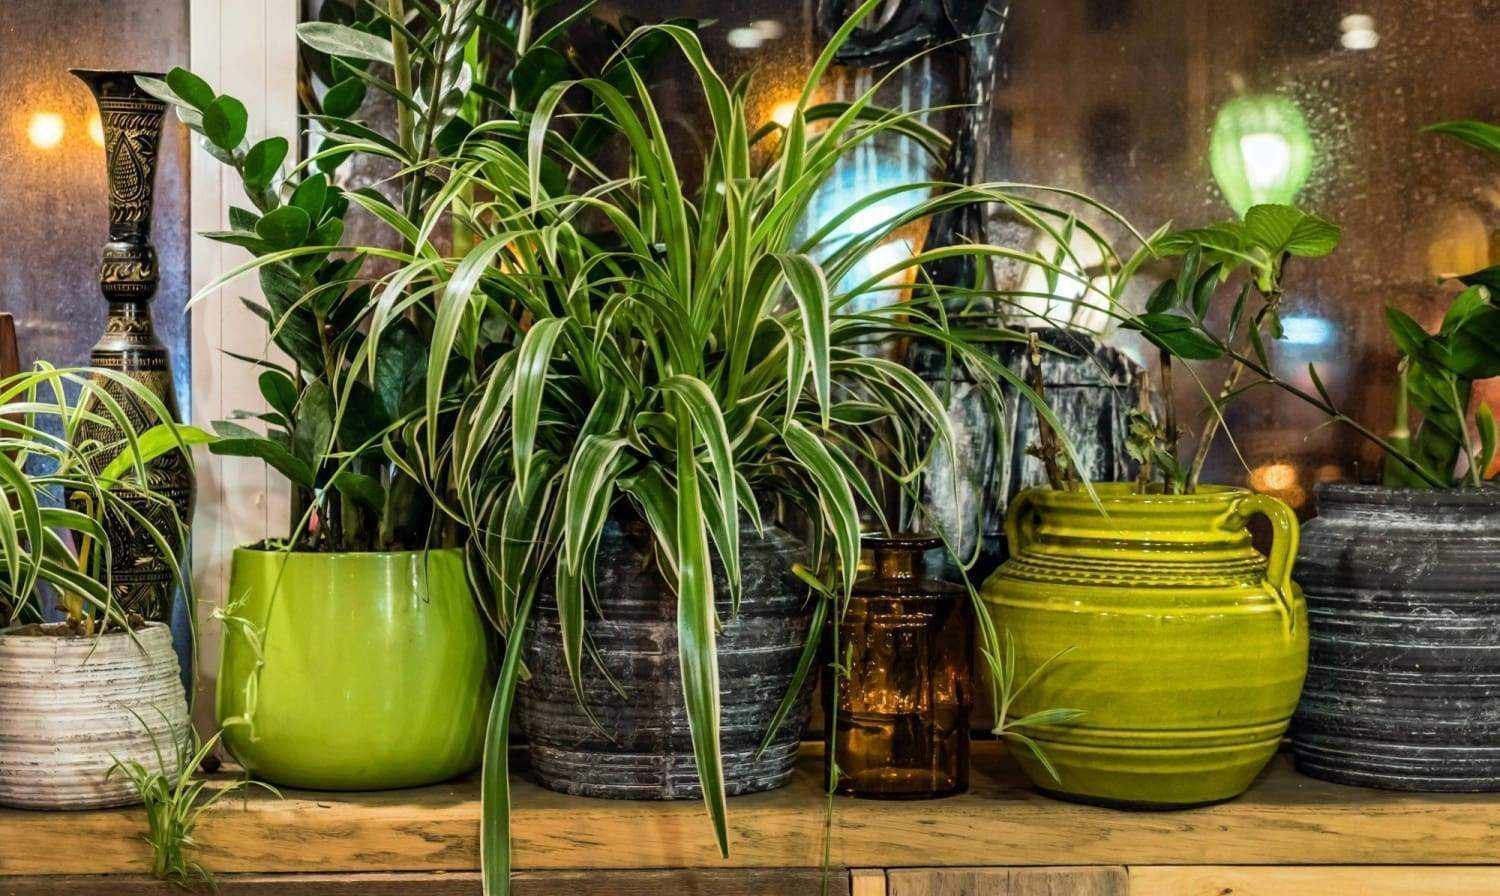 10 Hard to Kill House Plants: A Guide for Those Without a Green Thumb